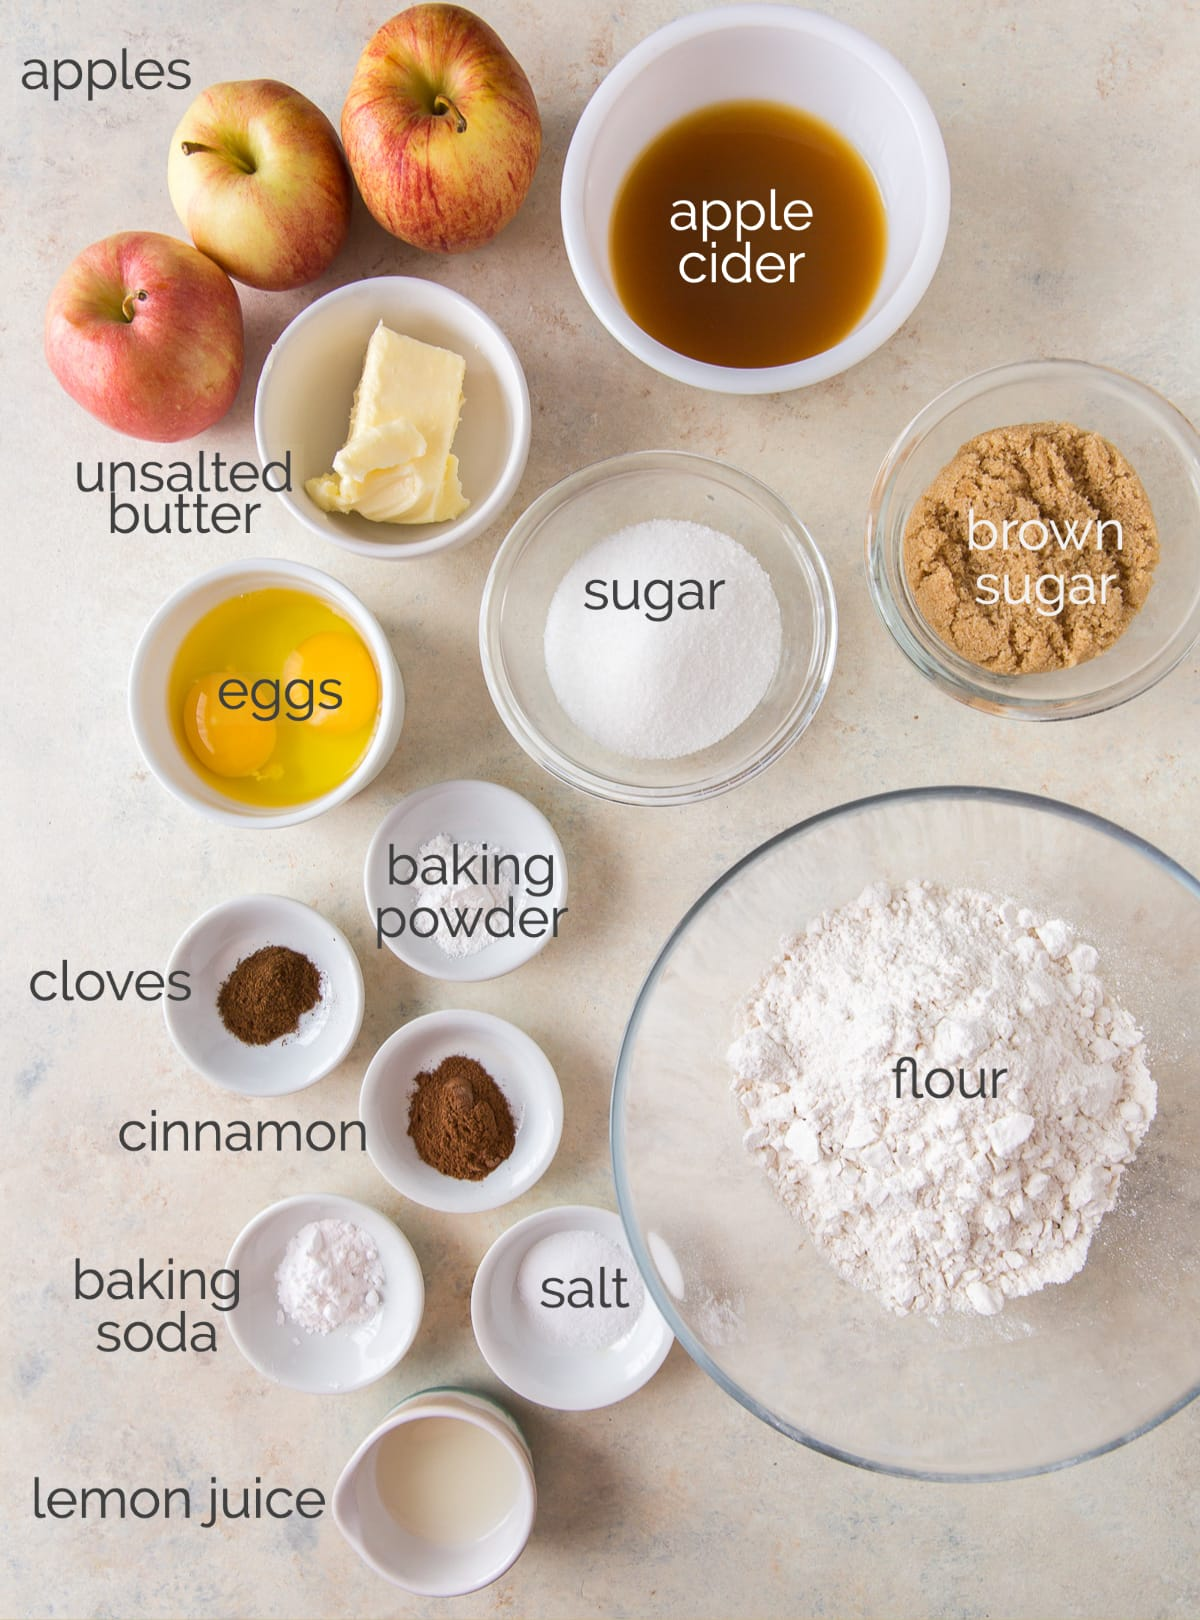 apple cider bread ingredients labeled with text